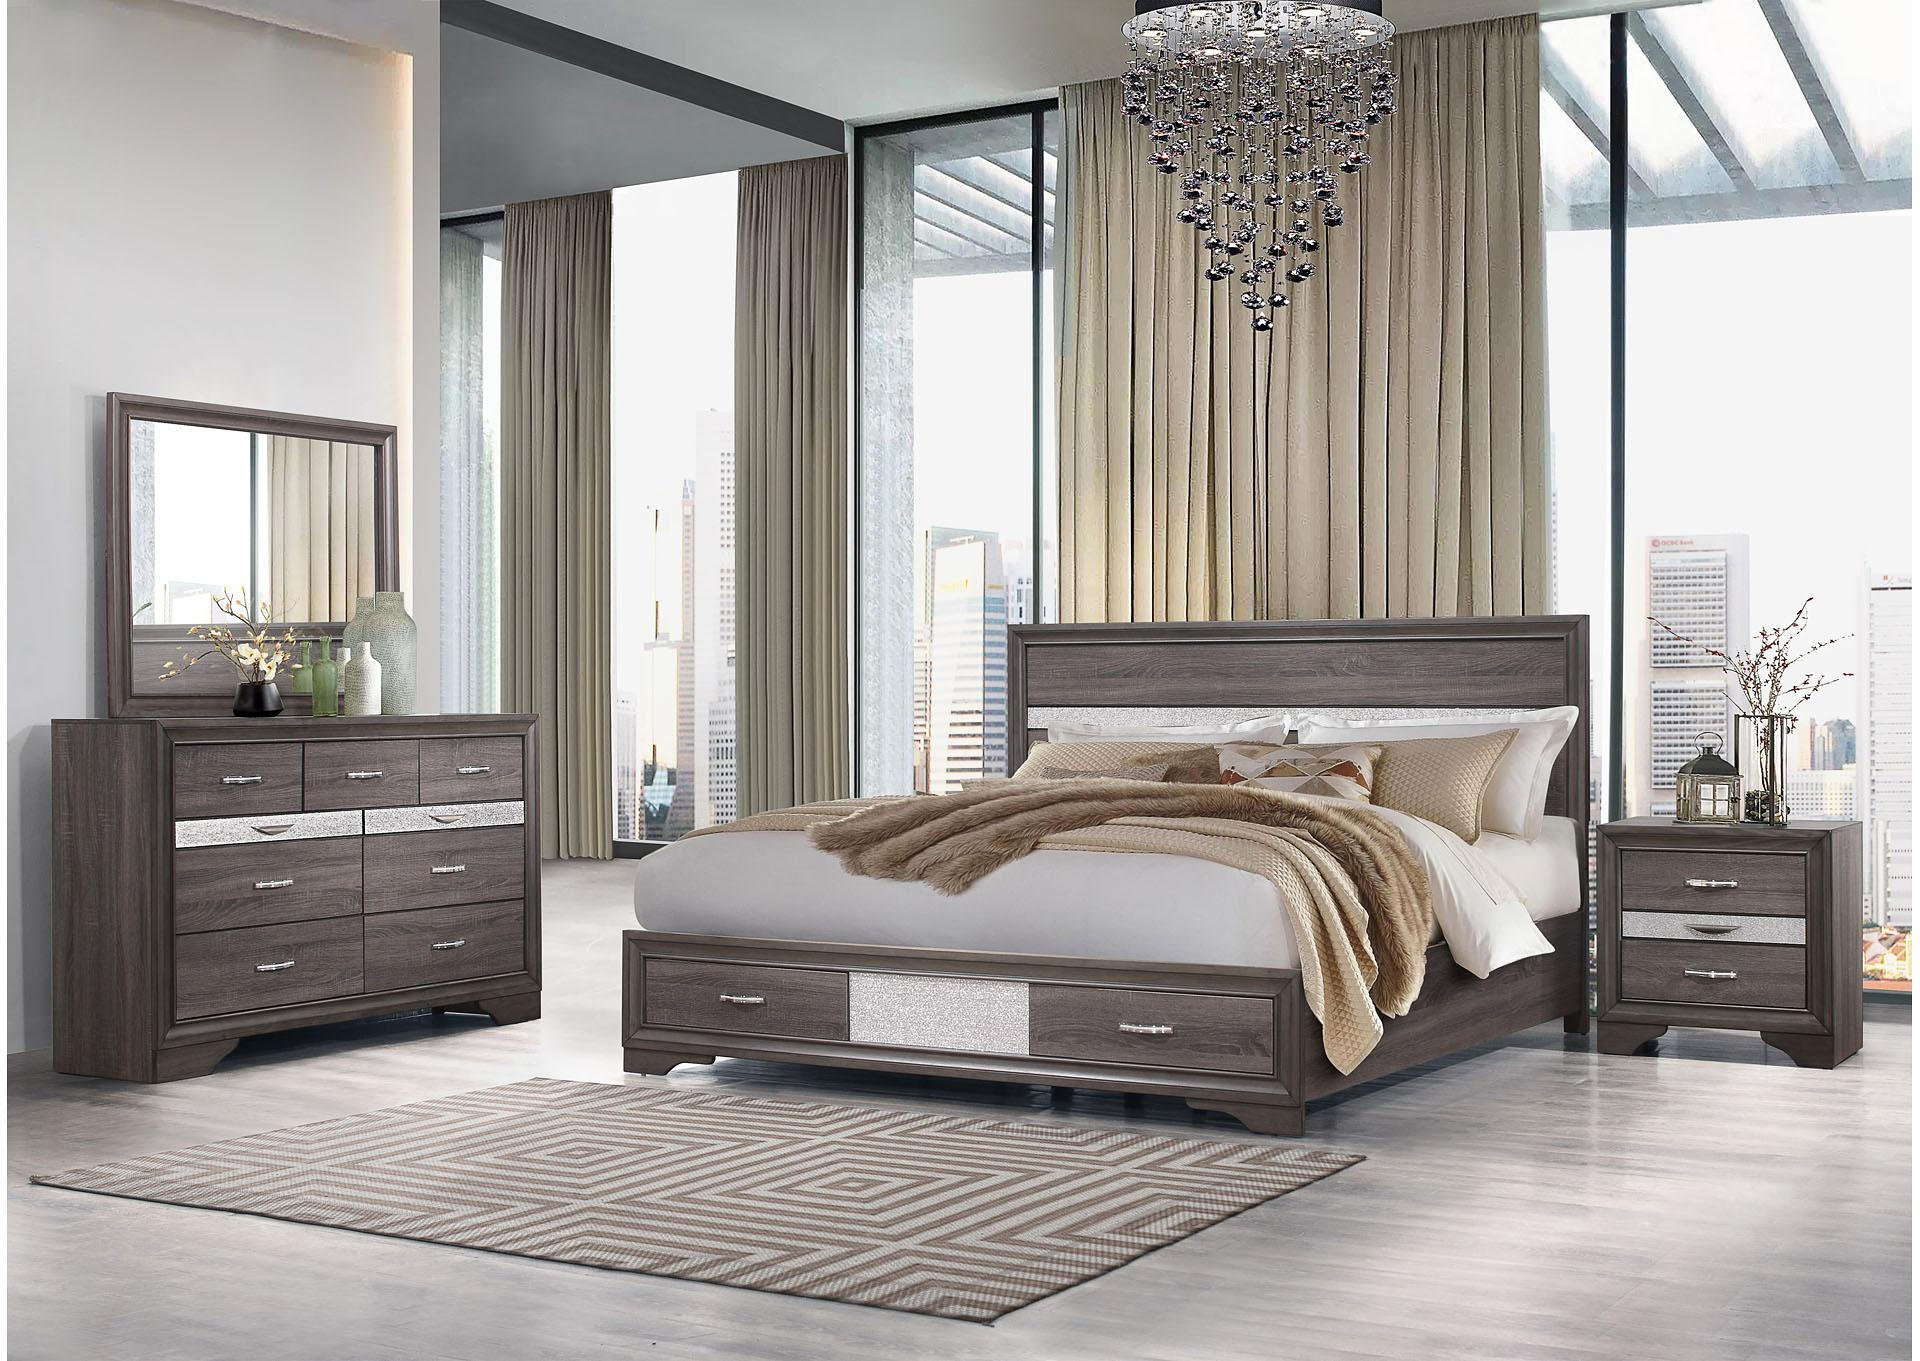 Seville Queen Bedroom Set W/ Dresser, Mirror, Chest and Nightstand,Instore Products